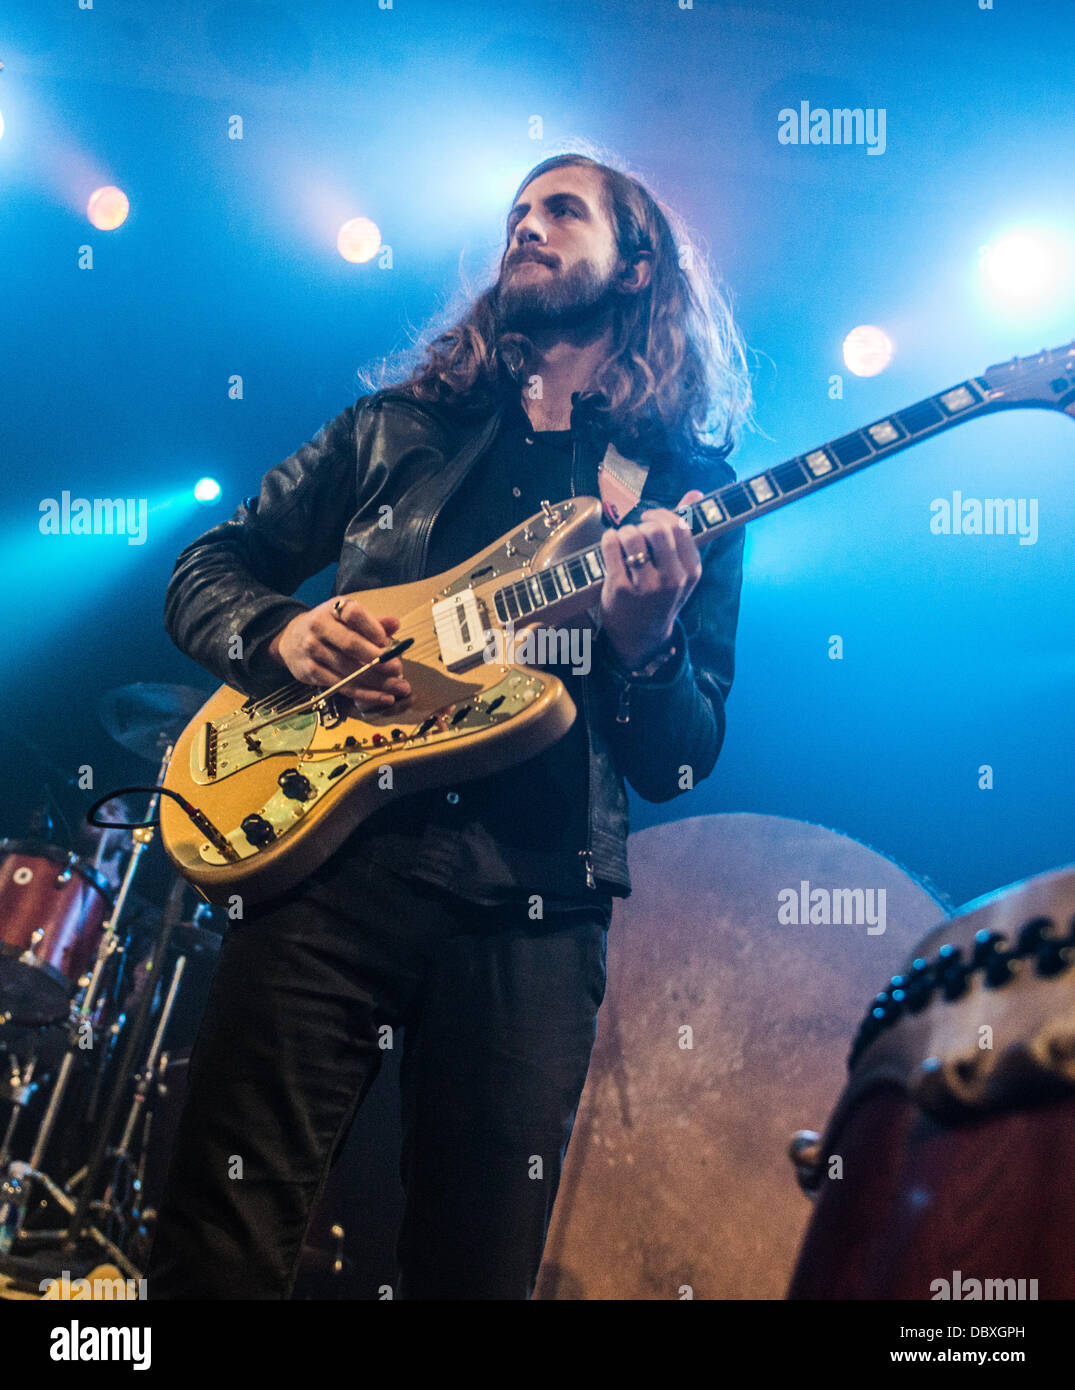 Wayne Sermon of Imagine Dragons performing live at Metro in Chicago, IL July 31, 2013 - Stock Image